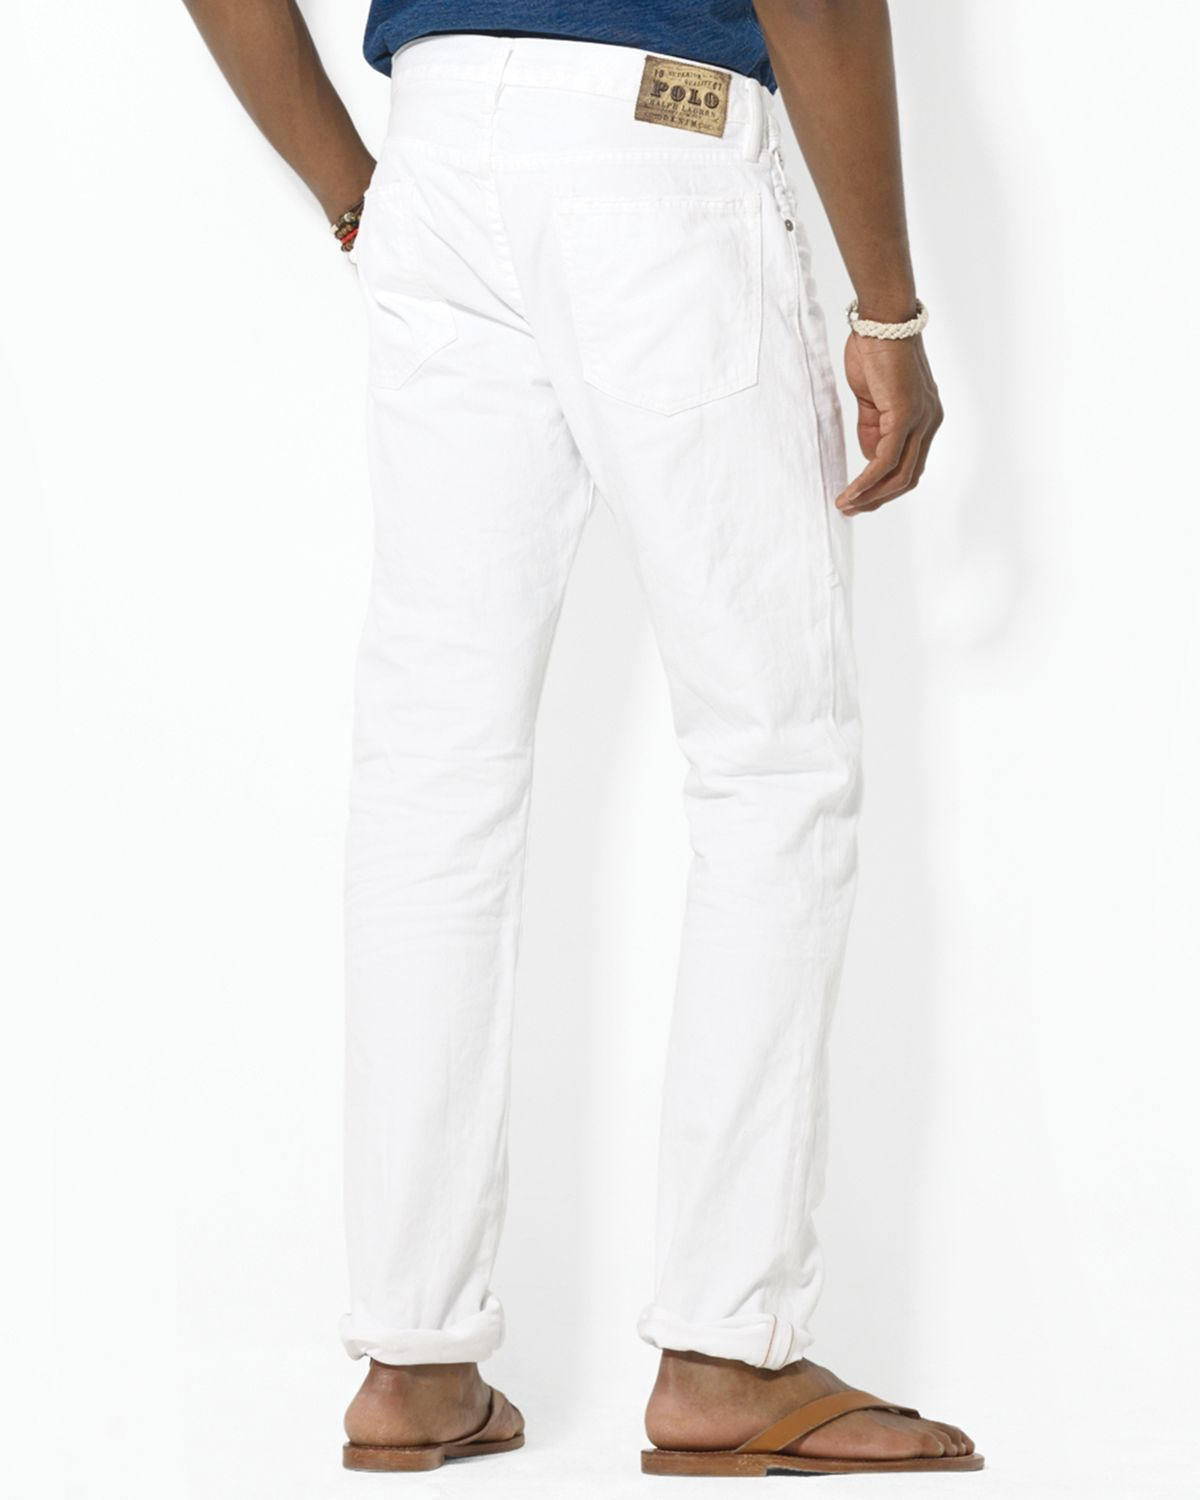 70e55200 Ralph Lauren Varick Slim Fit Hudson White Jean for men